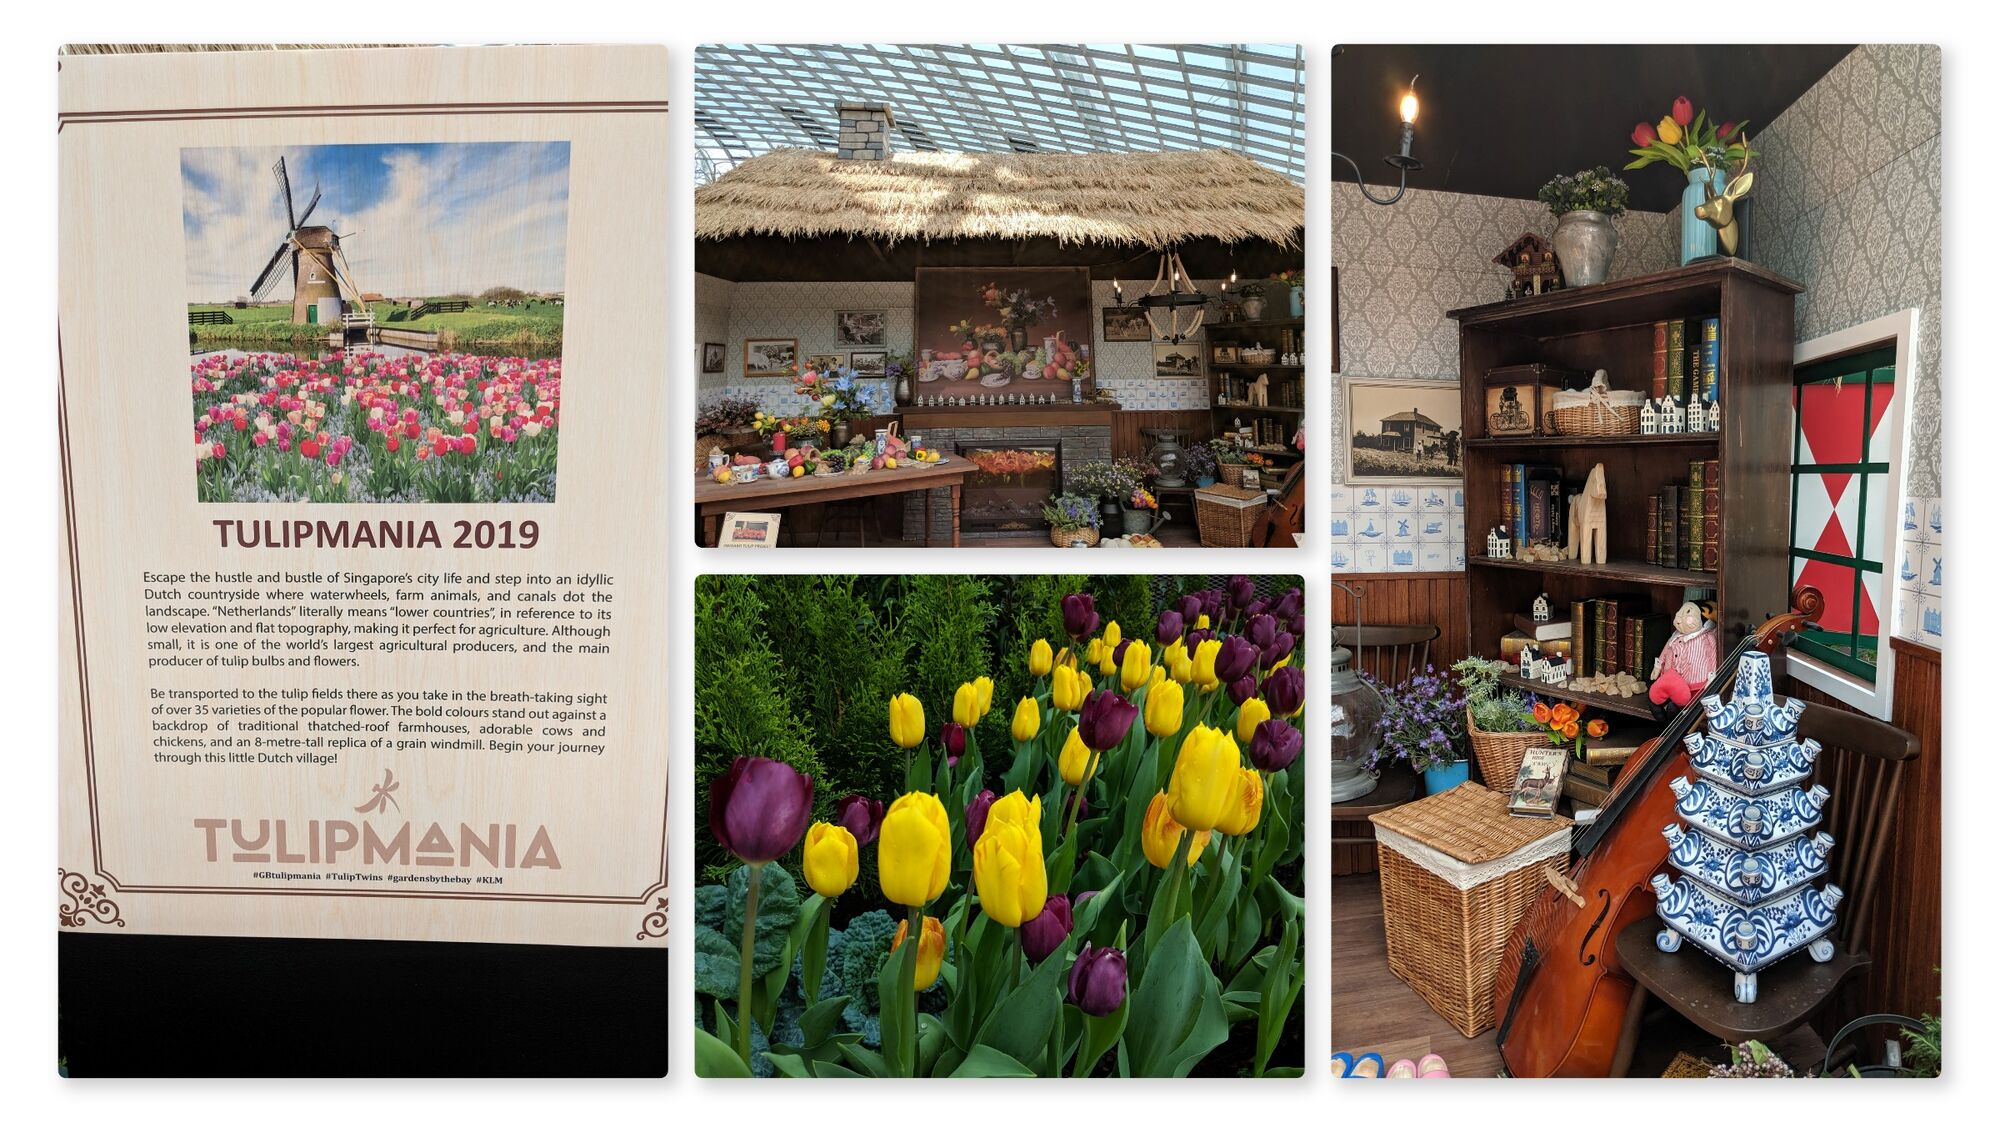 Tulipmania 2019 - Step into an idyllic Dutch Countryside where you can see tulip bulbs, farm house and more.